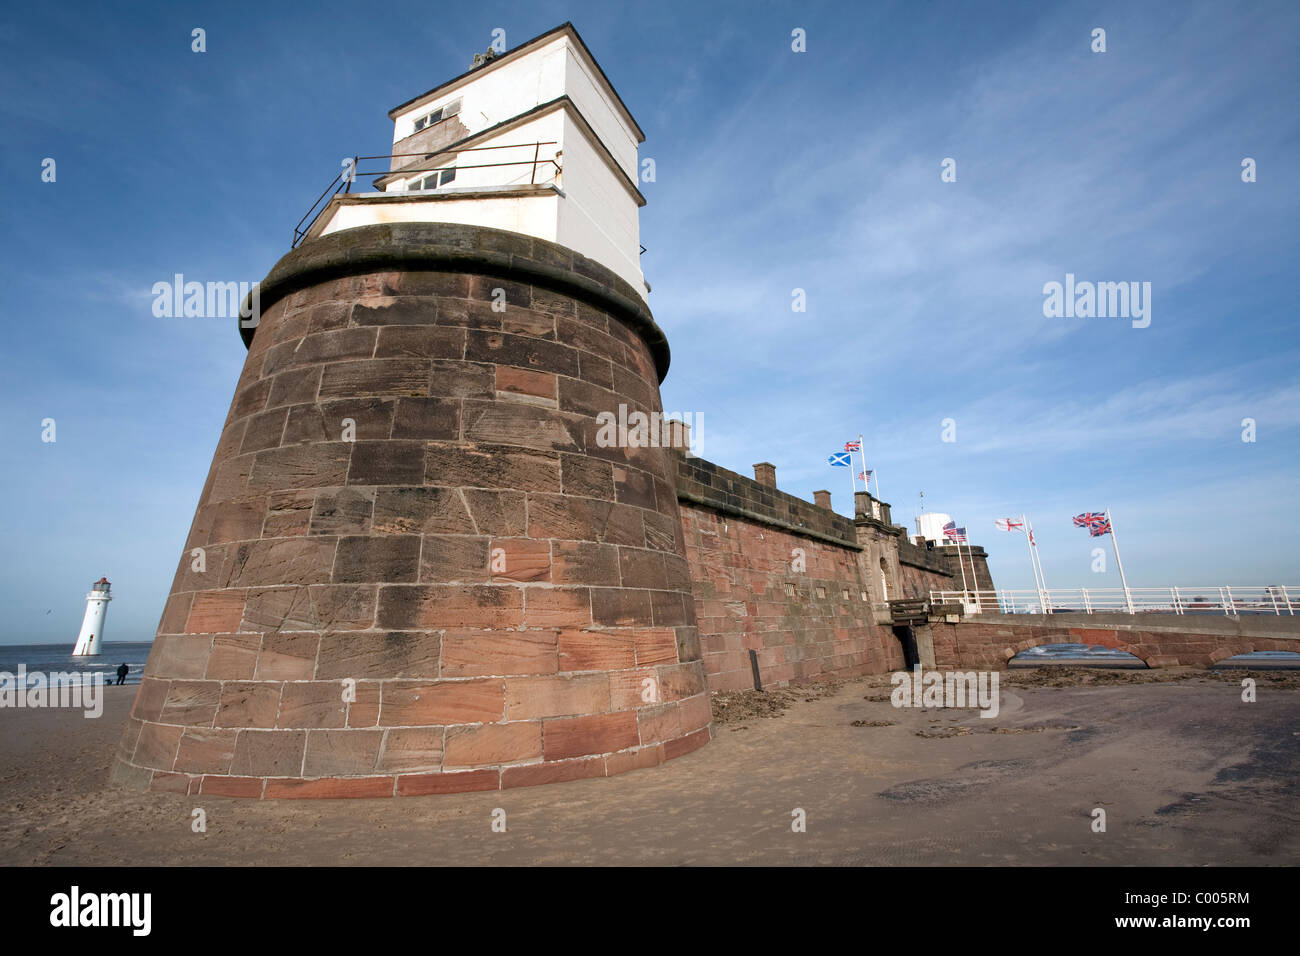 Fort Perch Rock, New Brighton, Wirral, NW UK - Stock Image